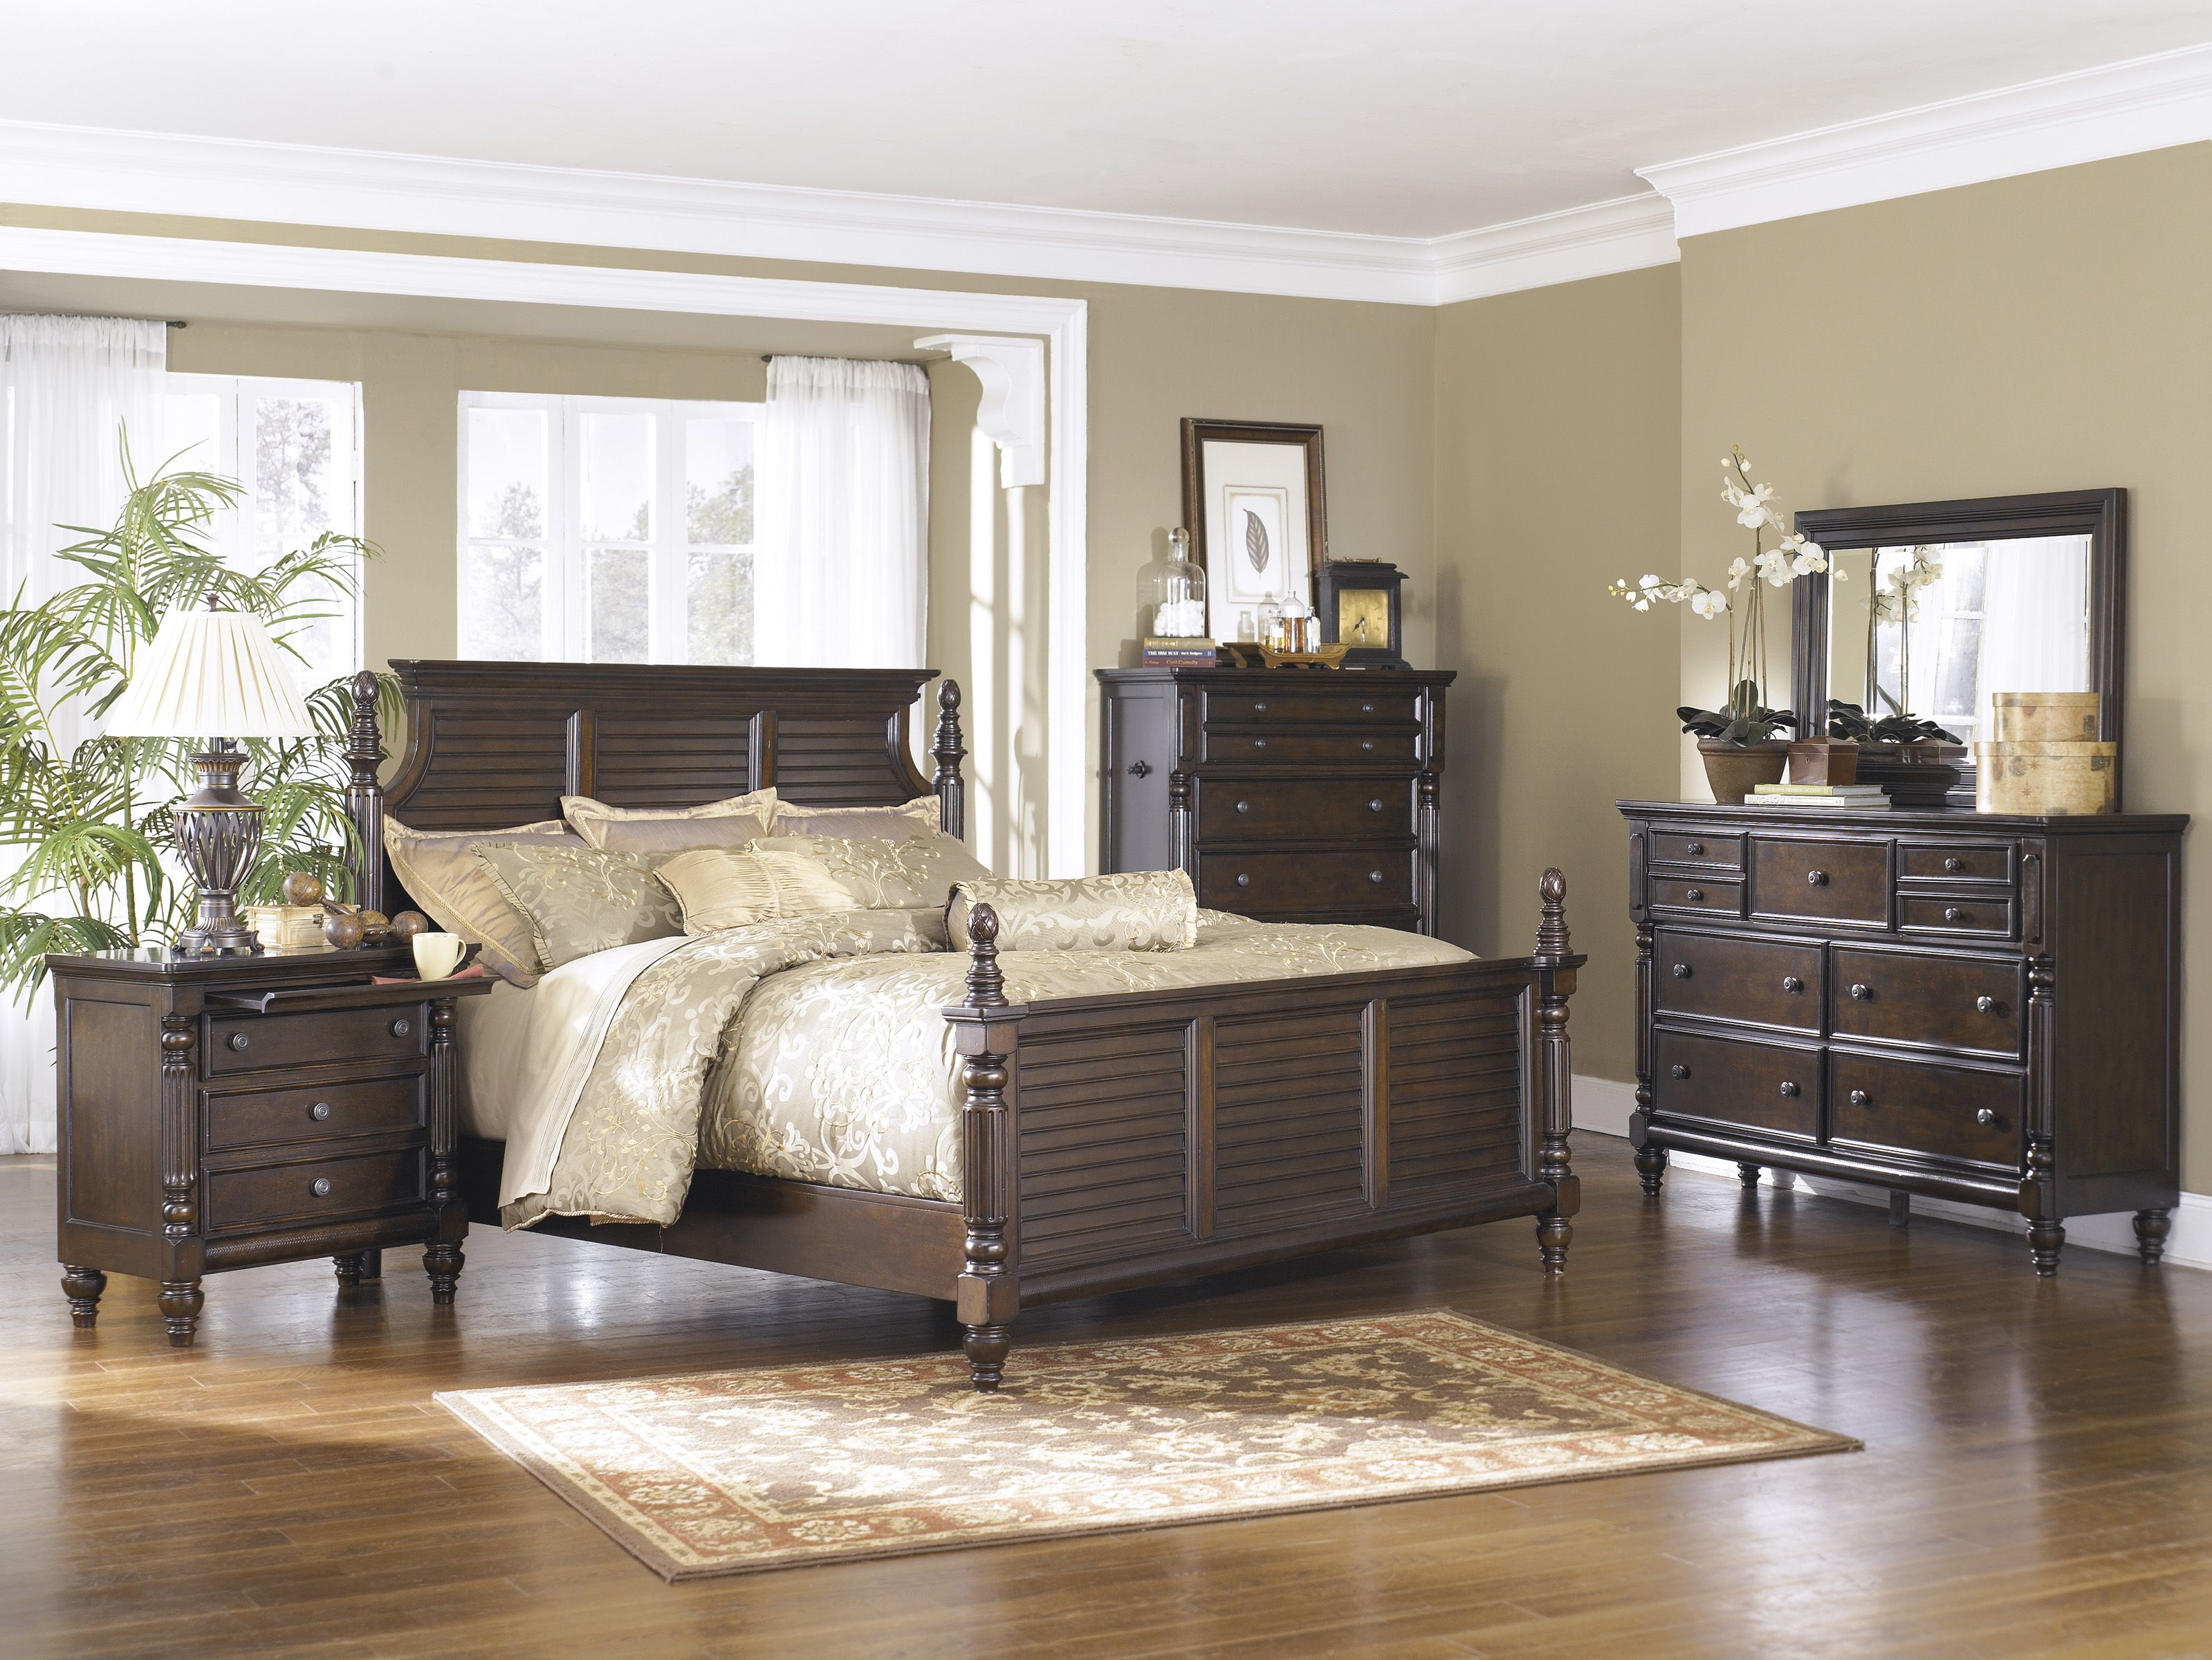 The Key Town Panel Bedroom Set from Ashley Furniture HomeStore I love it Ven a conocer los nuevos ingresos Homestore